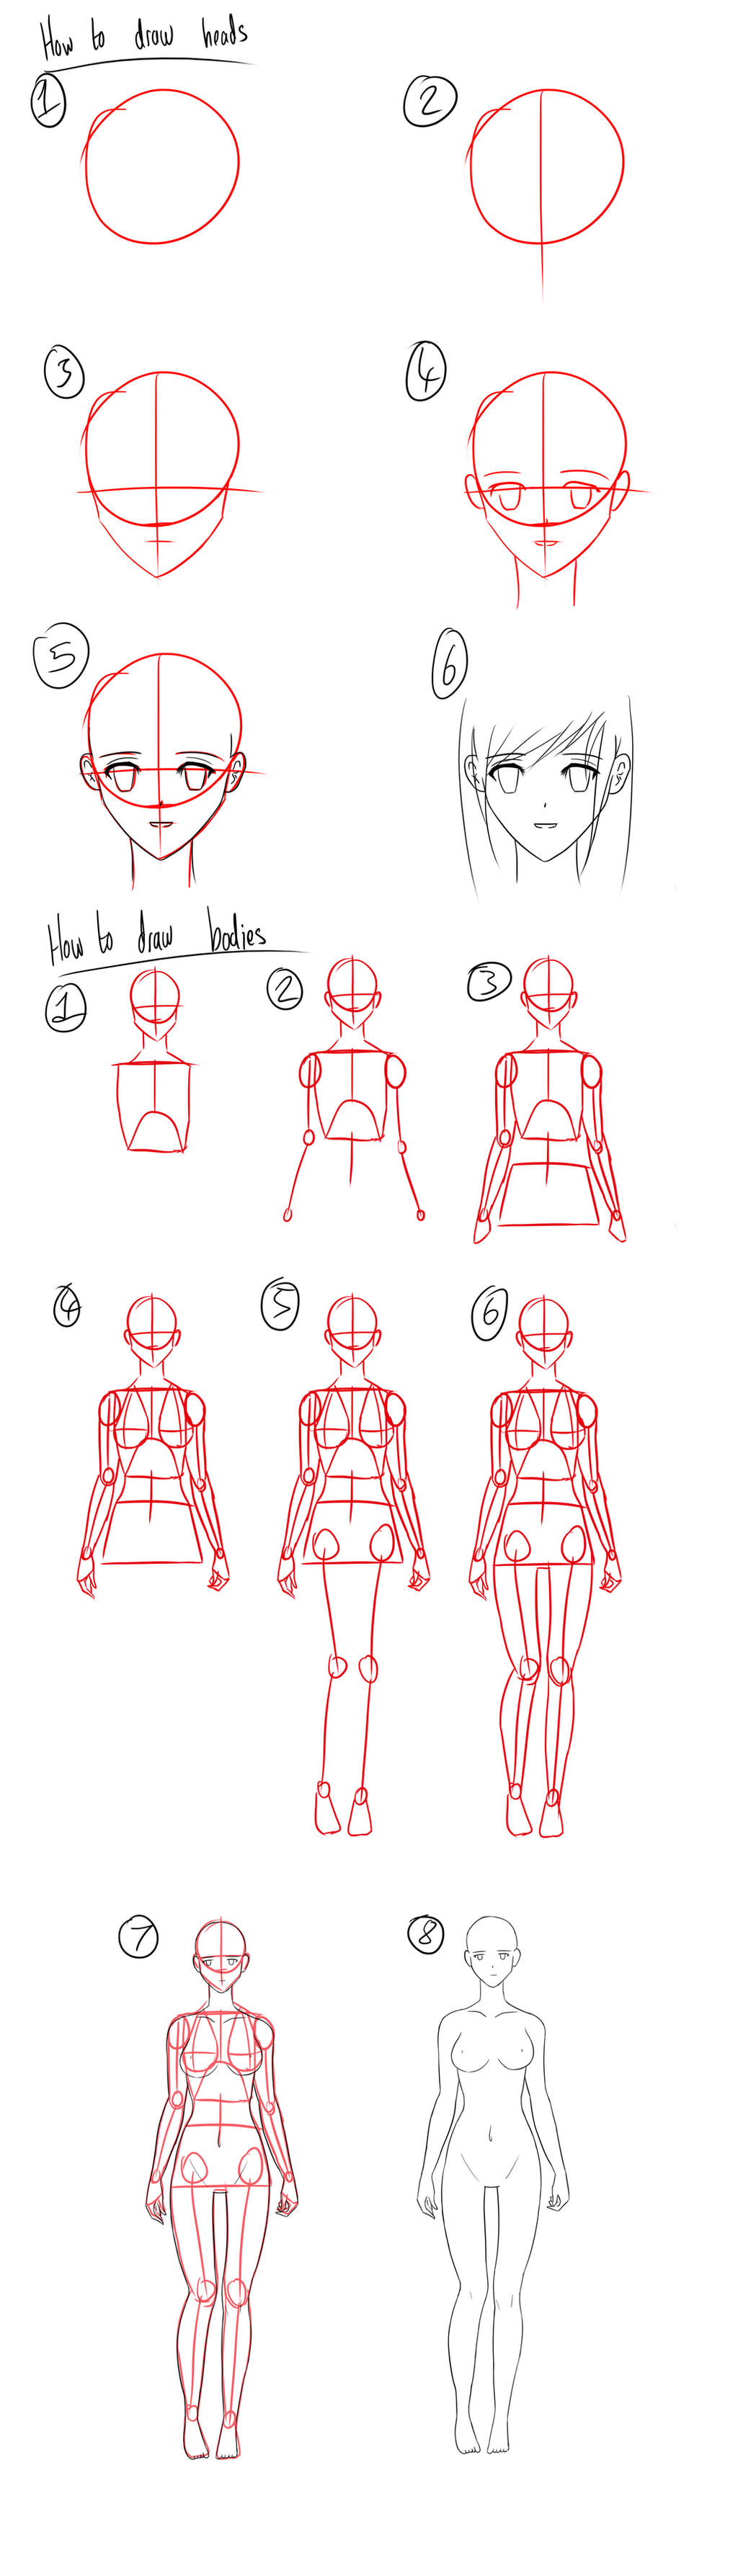 tutorial how to draw anime heads female bodies by micky k on